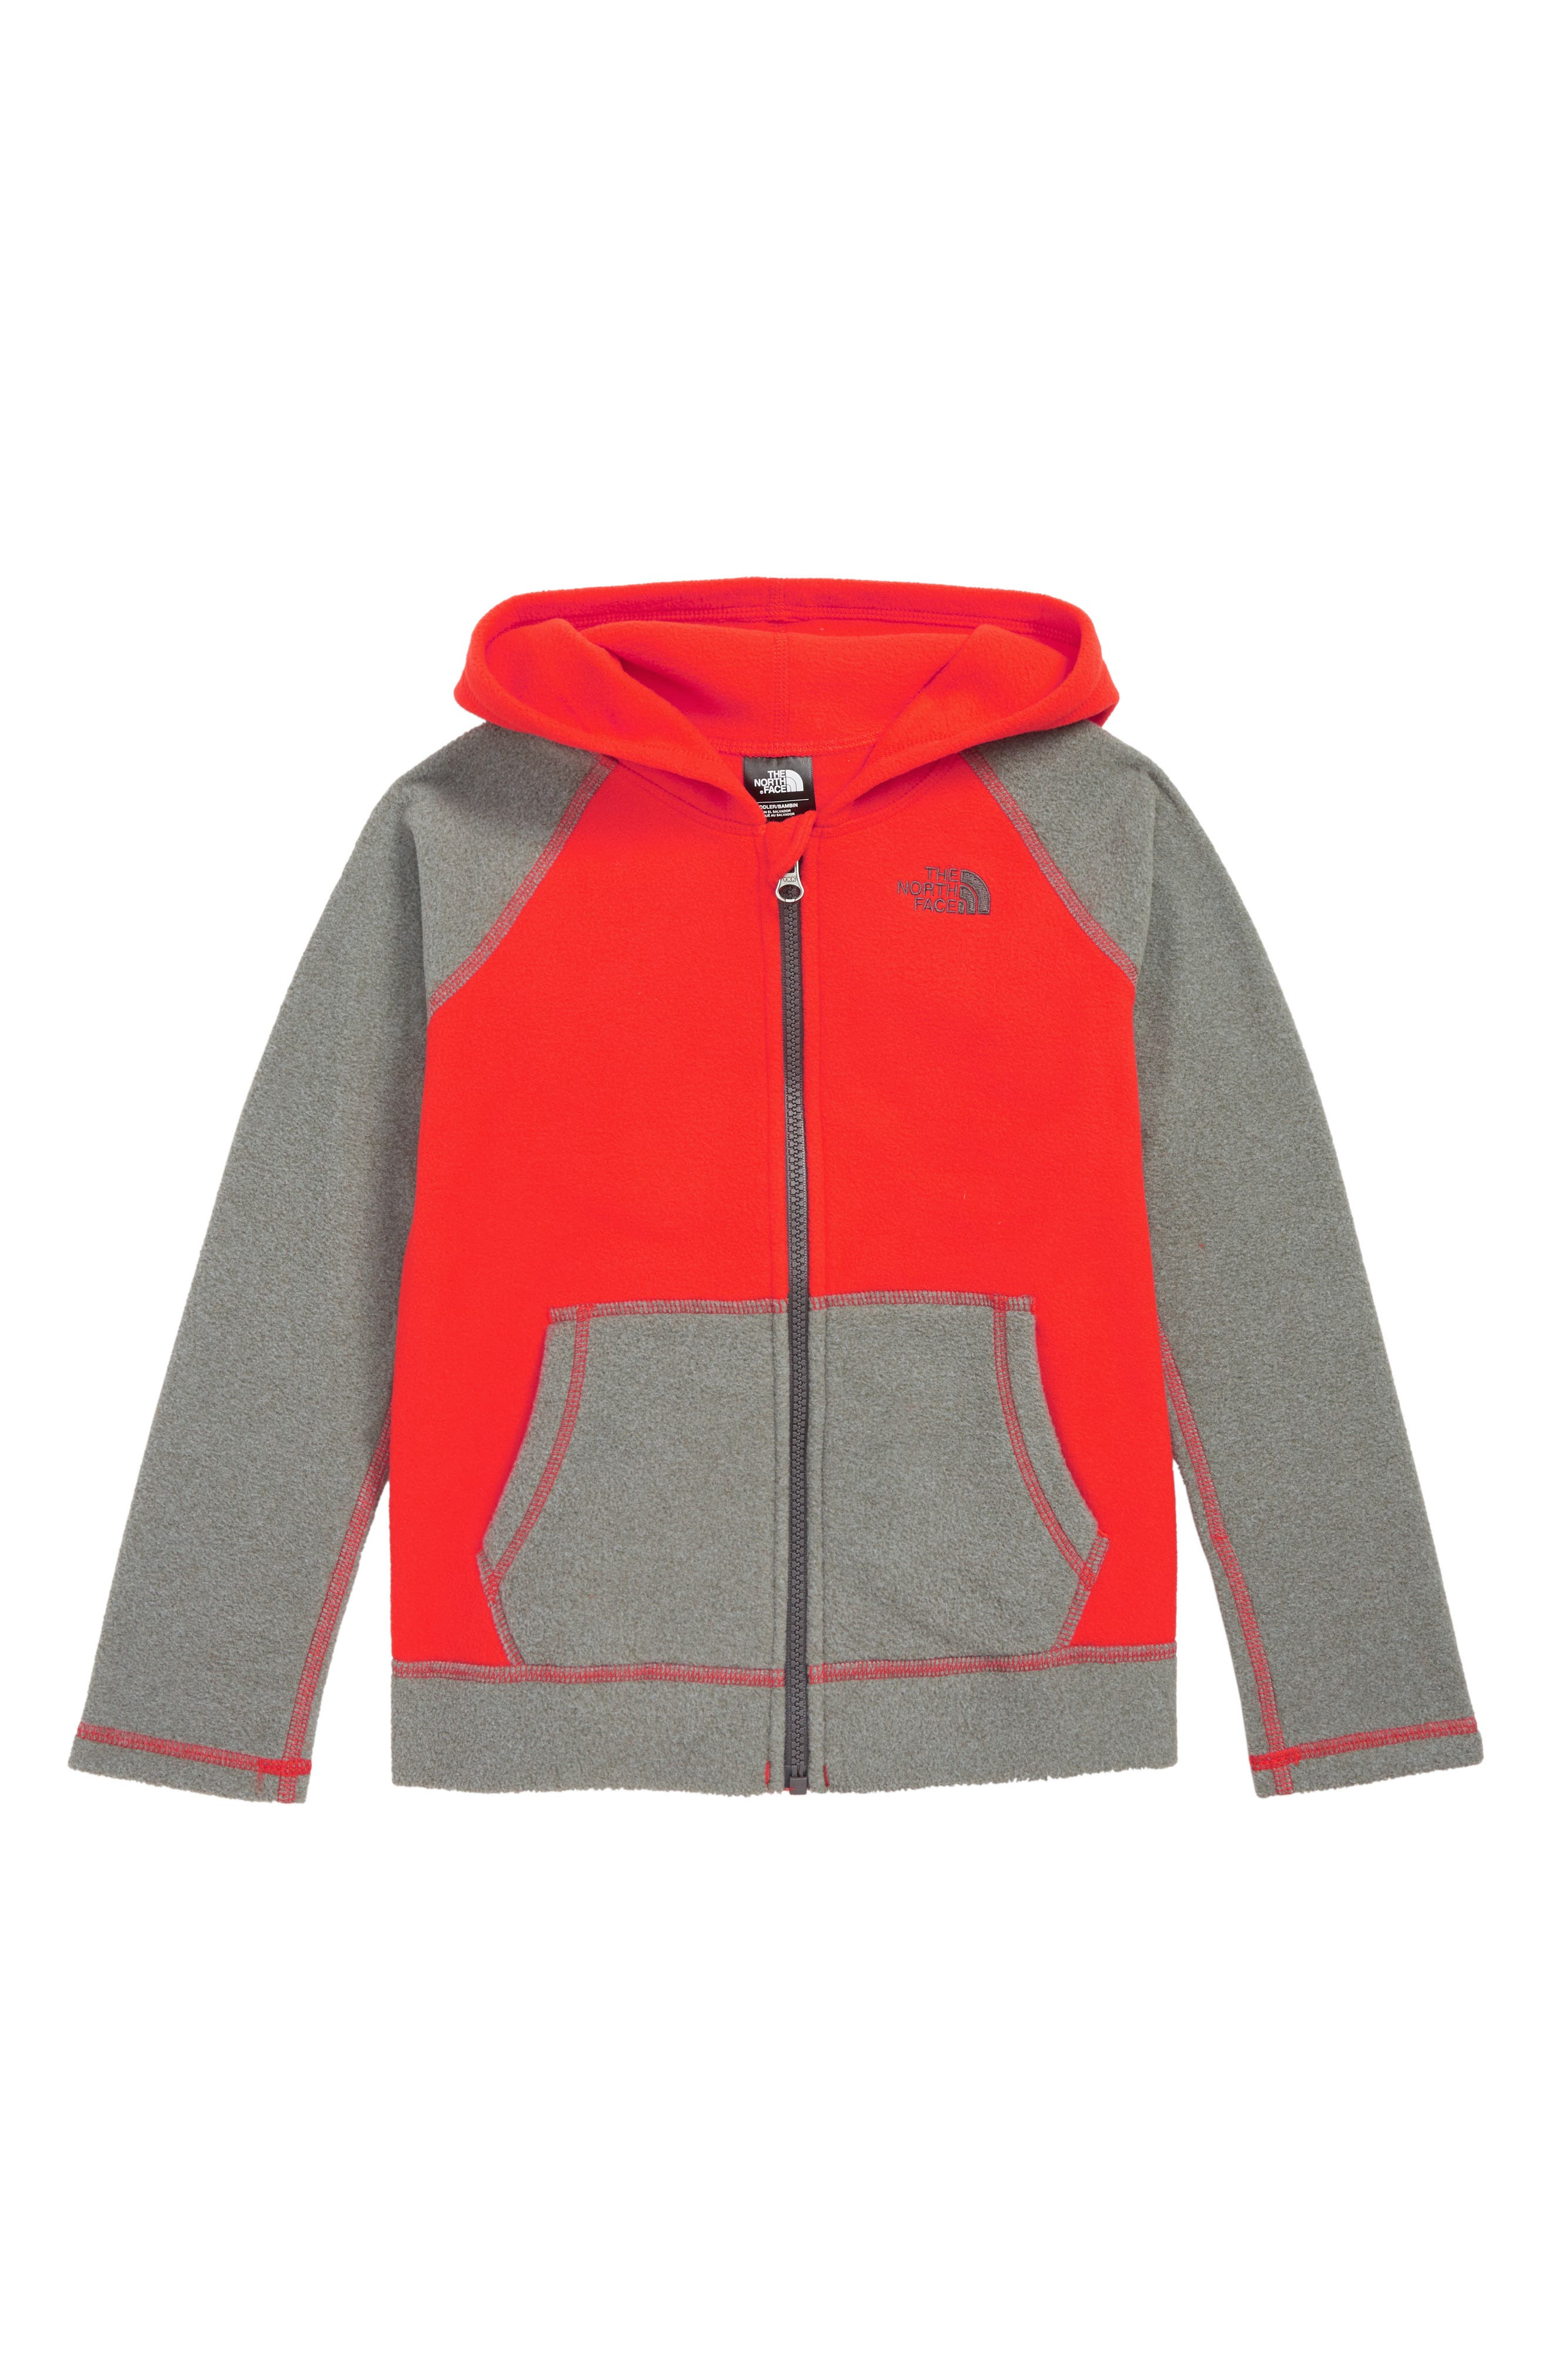 THE NORTH FACE Glacier Zip Hoodie, Main, color, FIERY RED